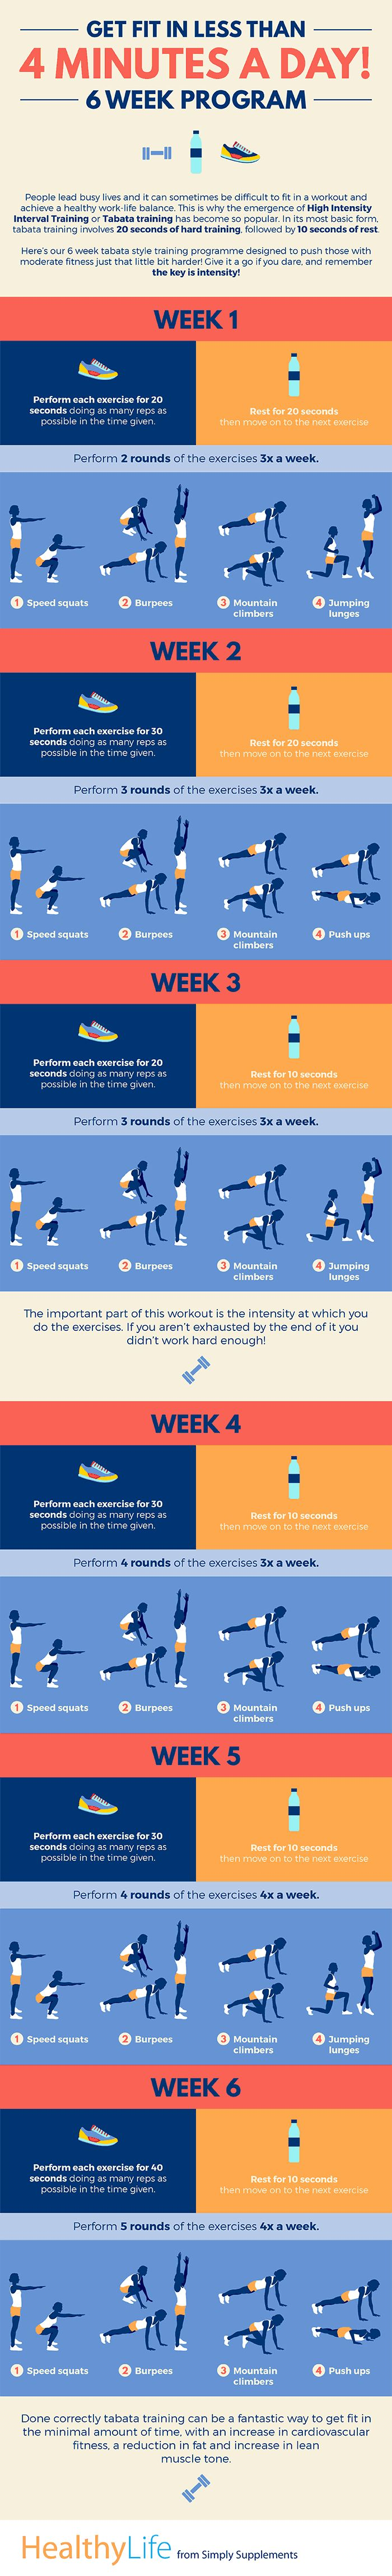 HIIT workout at home!  Here's our 6 week HIIT/tabata style training programme designed to push those with moderate fitness just that little bit harder! Give it a go if you dare and remember, the key is intensity!